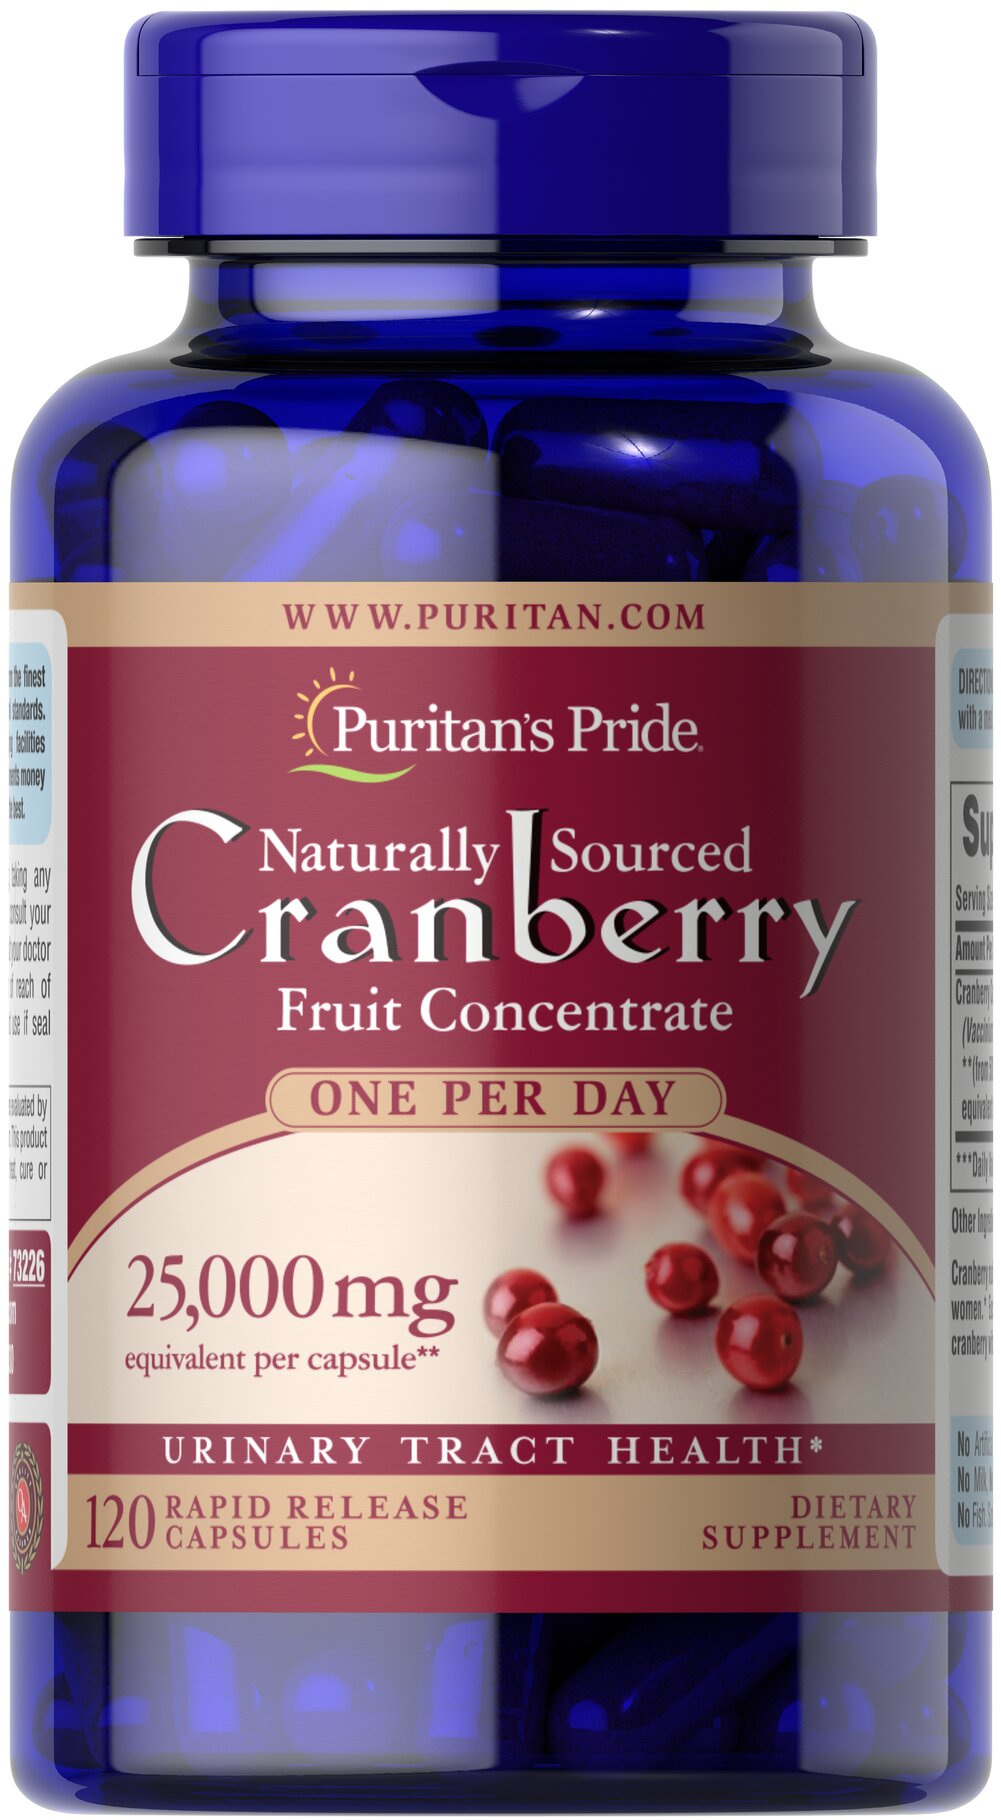 One A Day Cranberry <p>Equivalent to 25,000 mg of Cranberry Fruit per Capsule.</p><p>For years, health experts have recommended cranberry to help promote urinary tract health.**</p><p>Each dose provides the natural benefits of the whole cranberry without any preservatives, sugars, water, flavoring or color.</p> 120 Capsules 25000 mg $24.99